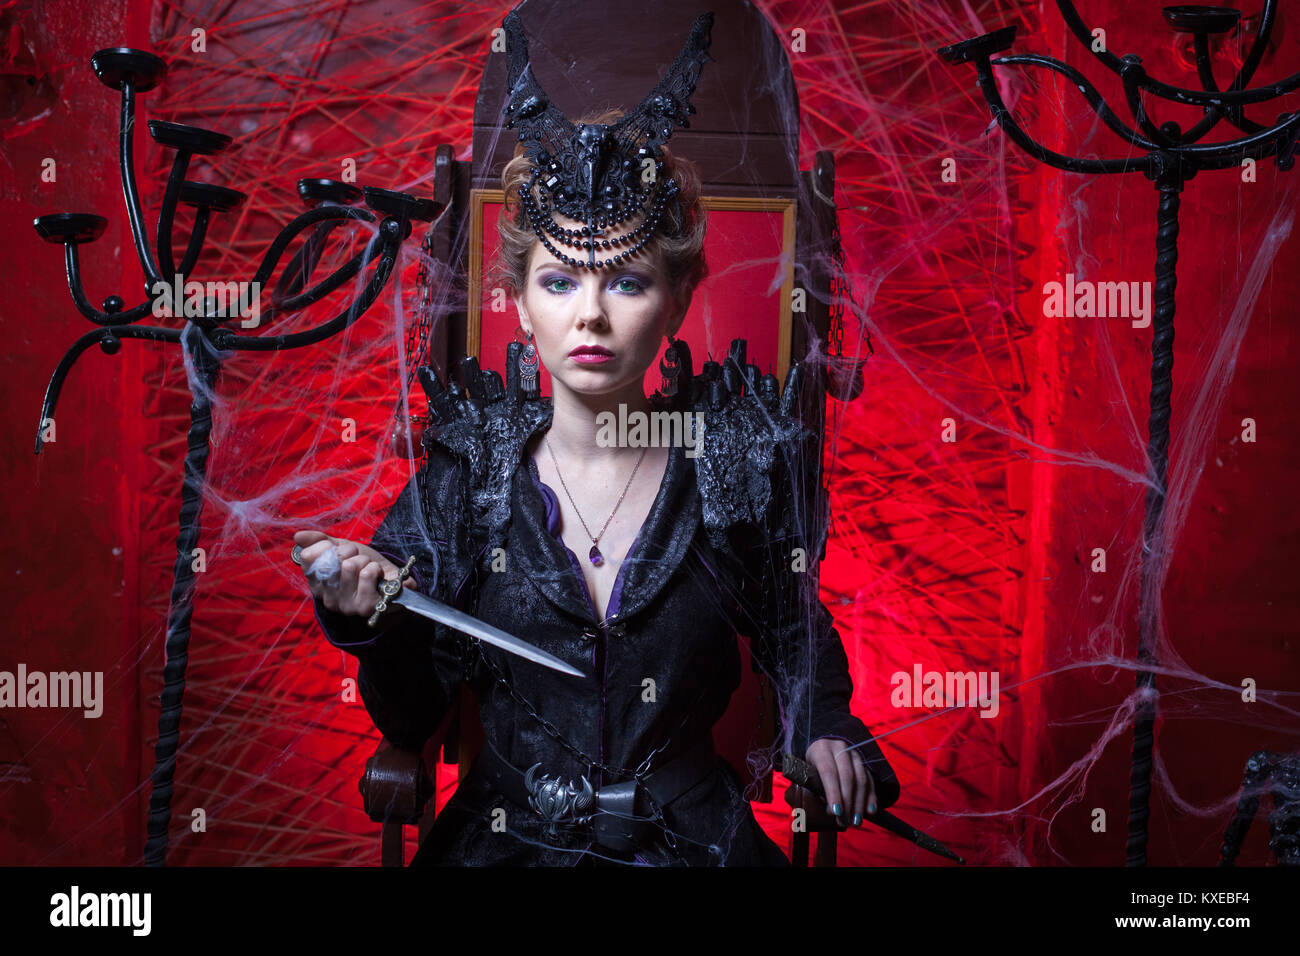 Woman in black sits on a throne and holds a dagger in her hands. - Stock Image